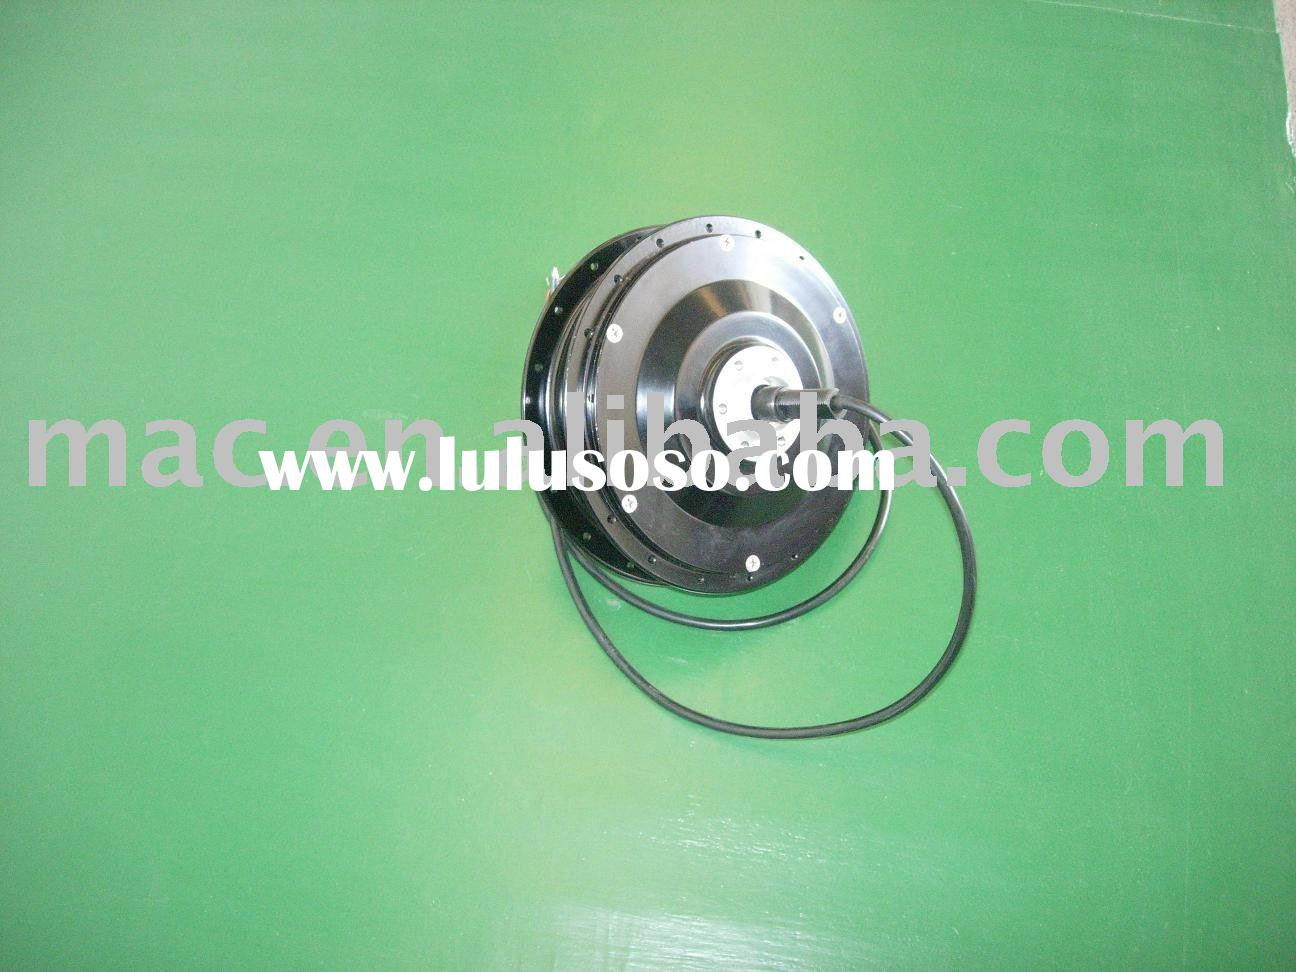 Pedal assist motor, geared hub motor, bike motor